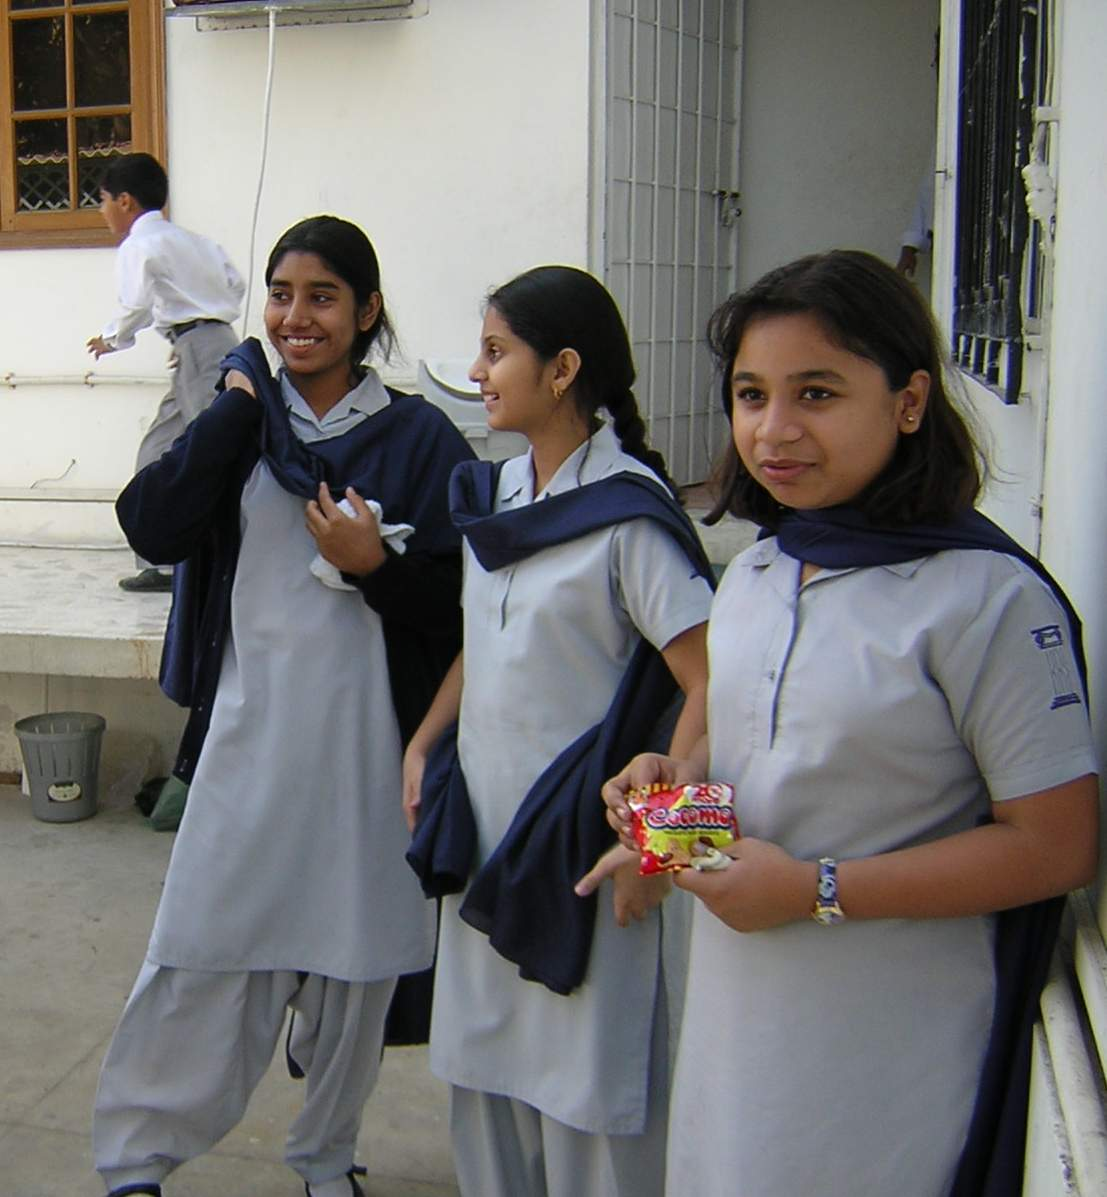 Pakistani anal Pictures girls of school fucking of